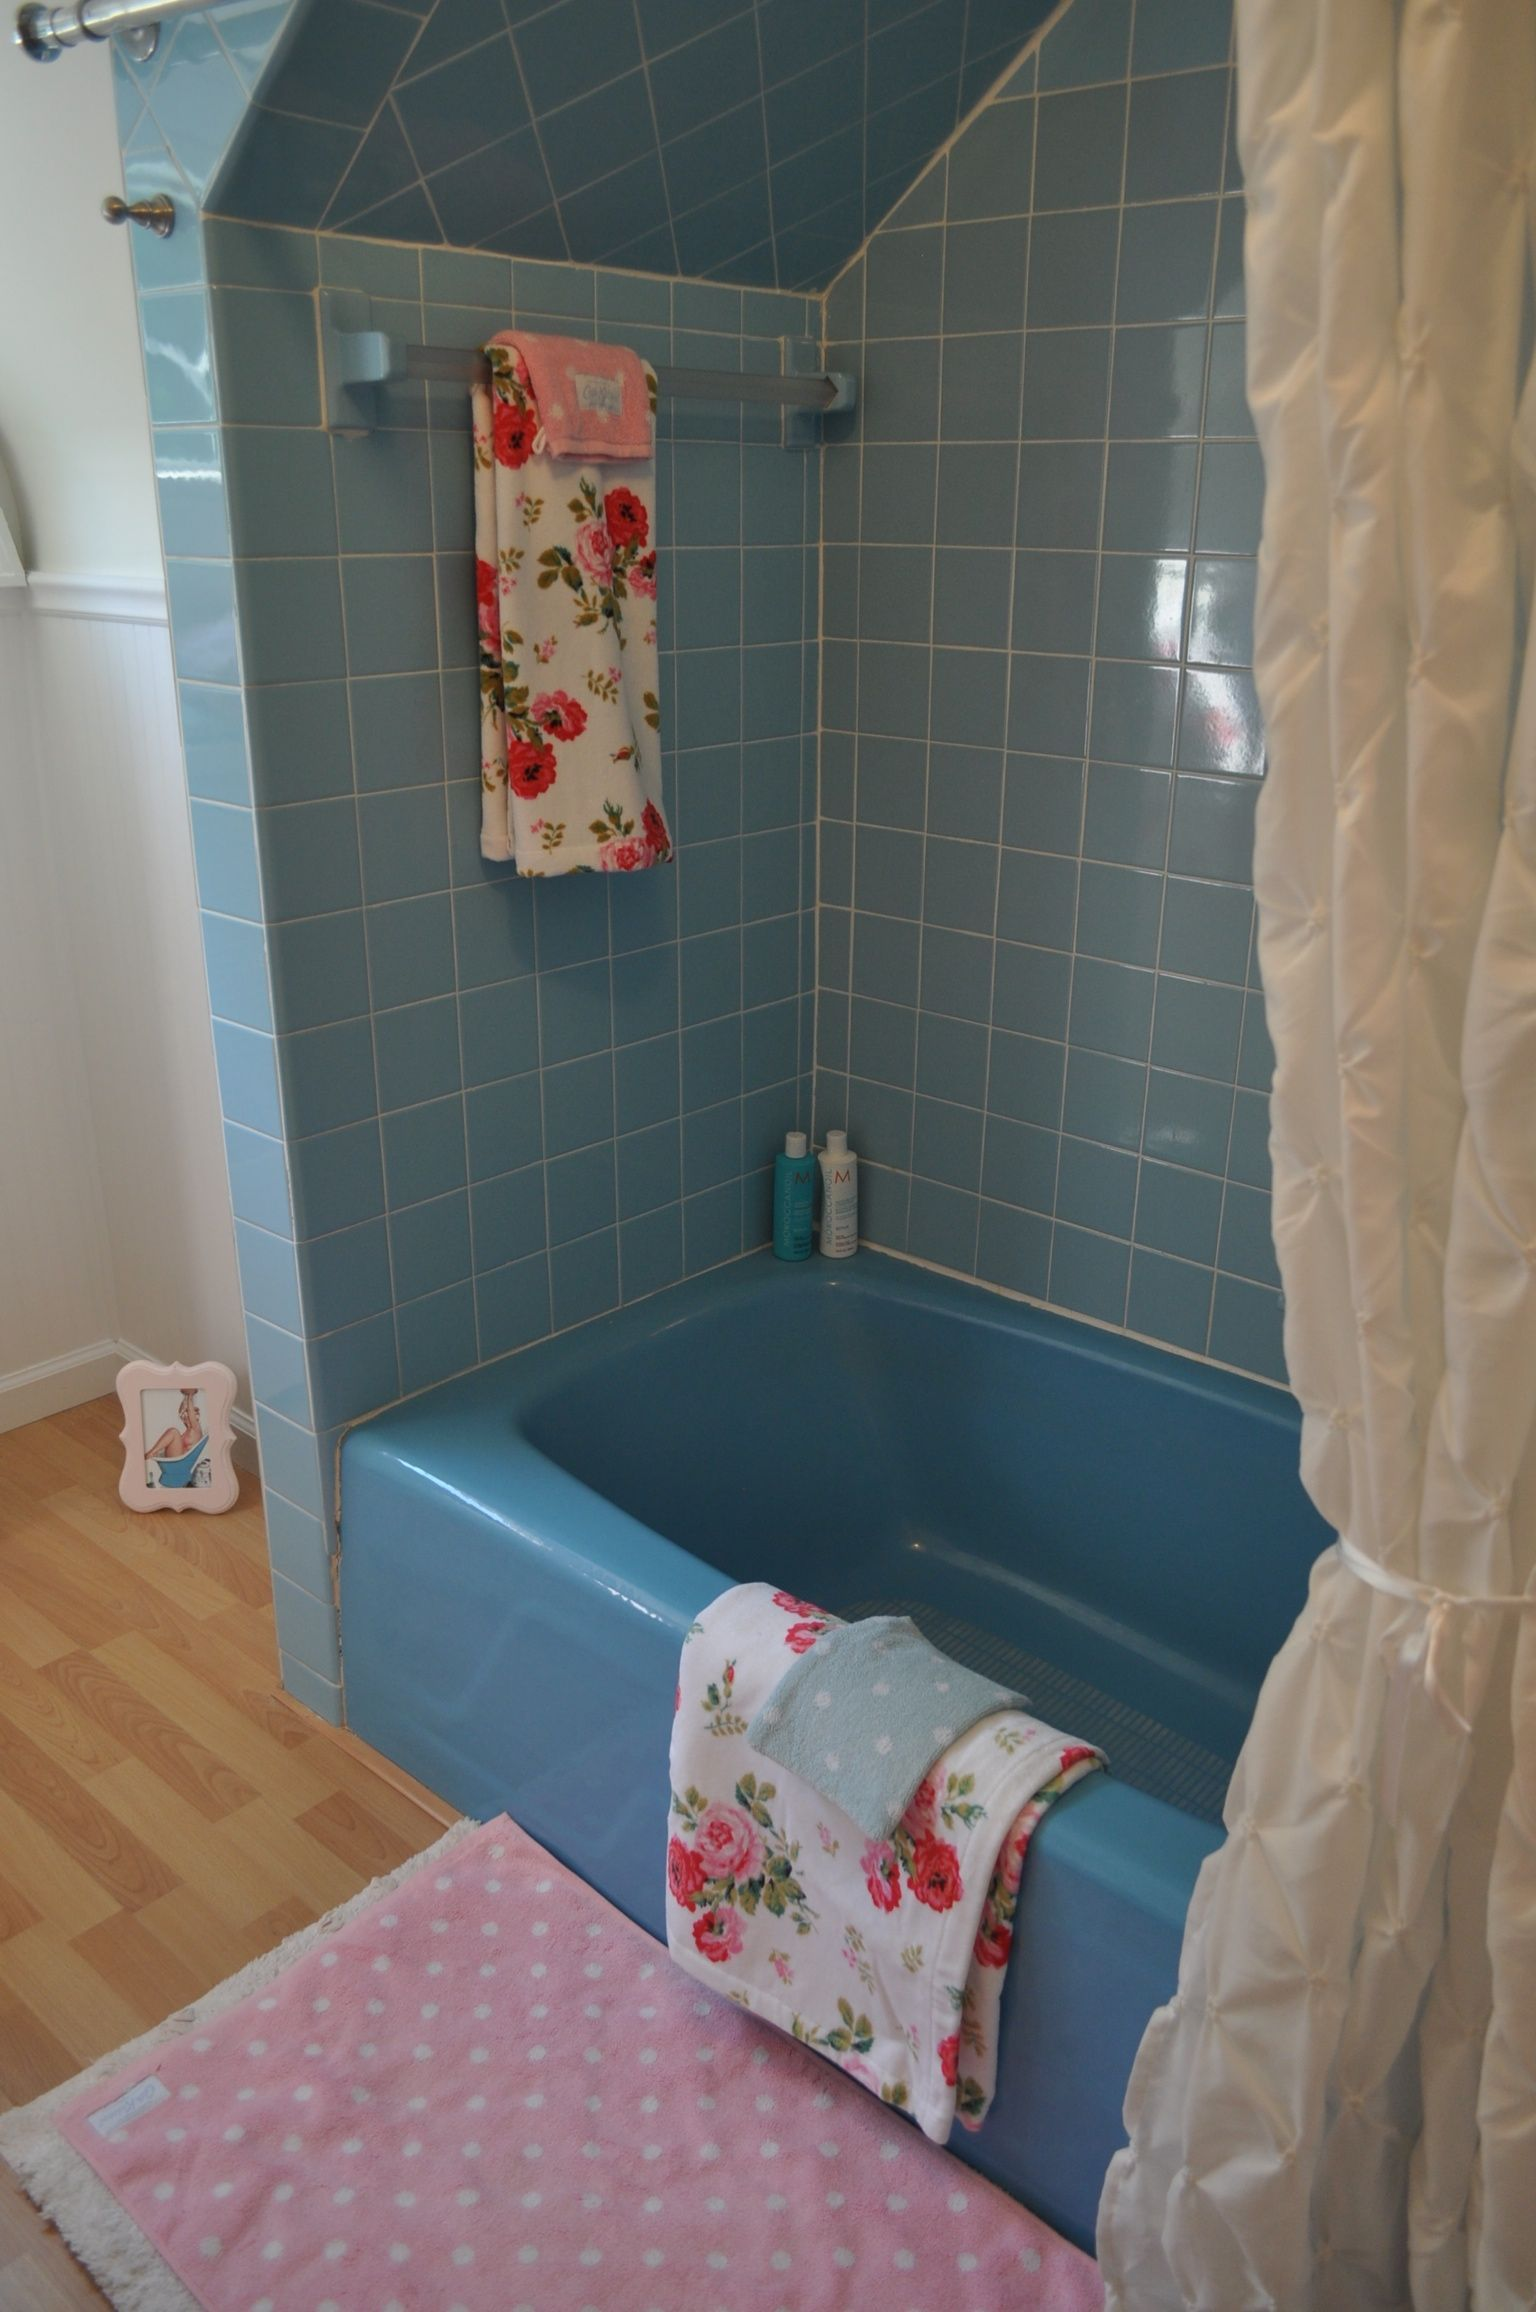 17 Most Amazing Bathroom Blue Old To Try Blue Bathroom Blue Bathroom Tile Retro Bathrooms